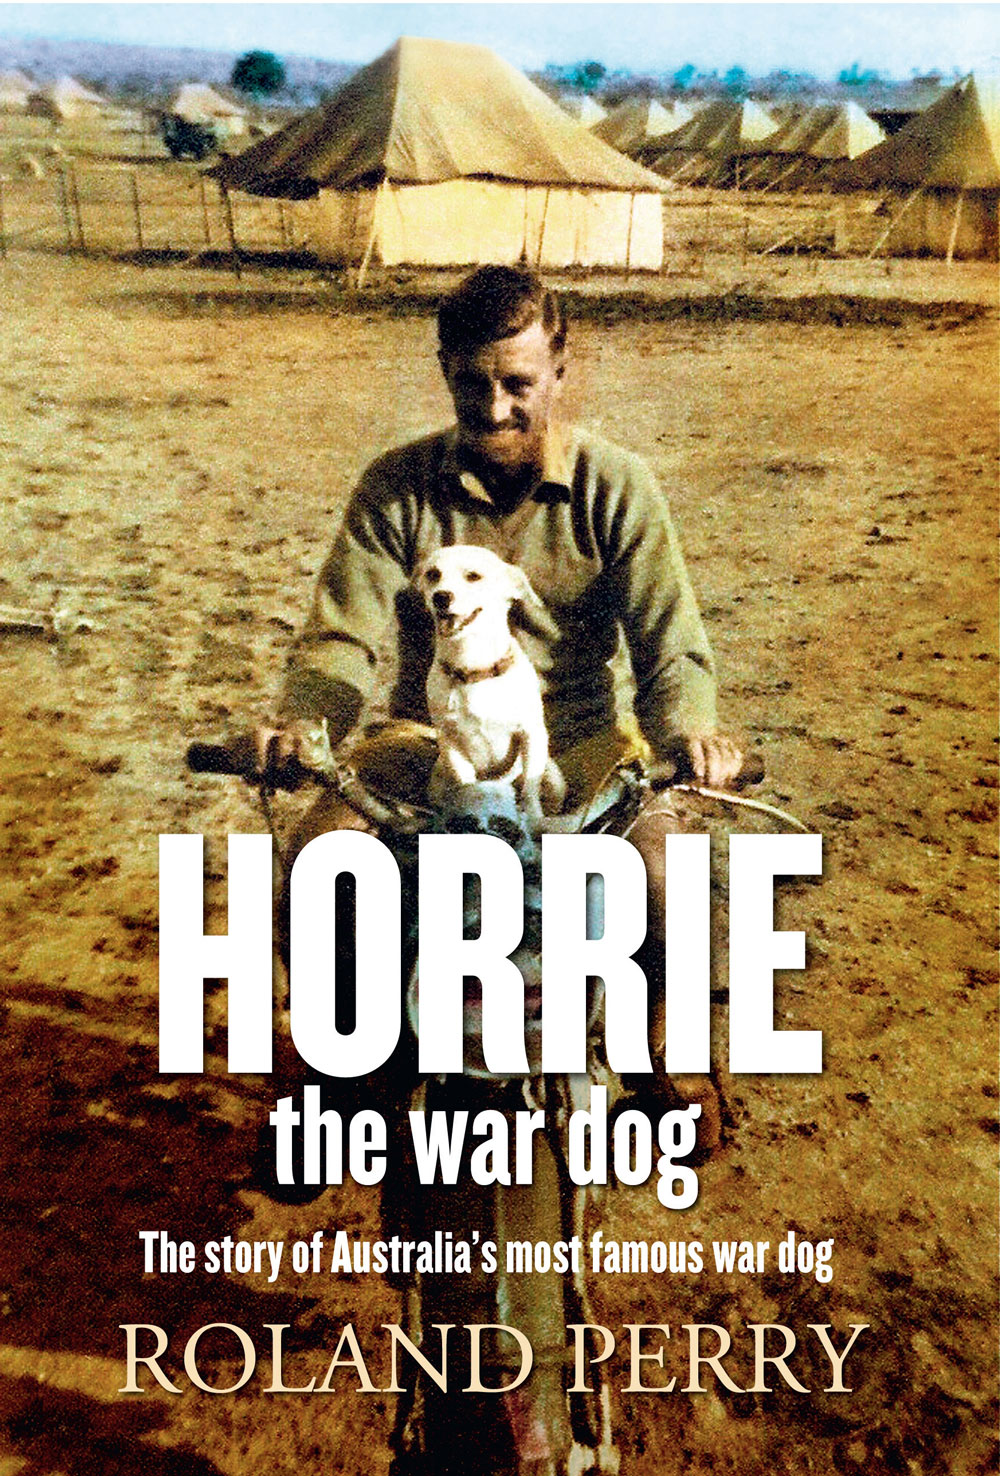 Horrie the War Dog: The story  of Australia's Most Famous War Dog by Roland Perry (Allen & Unwin, $27.99) is out now. Click on the image to read more.